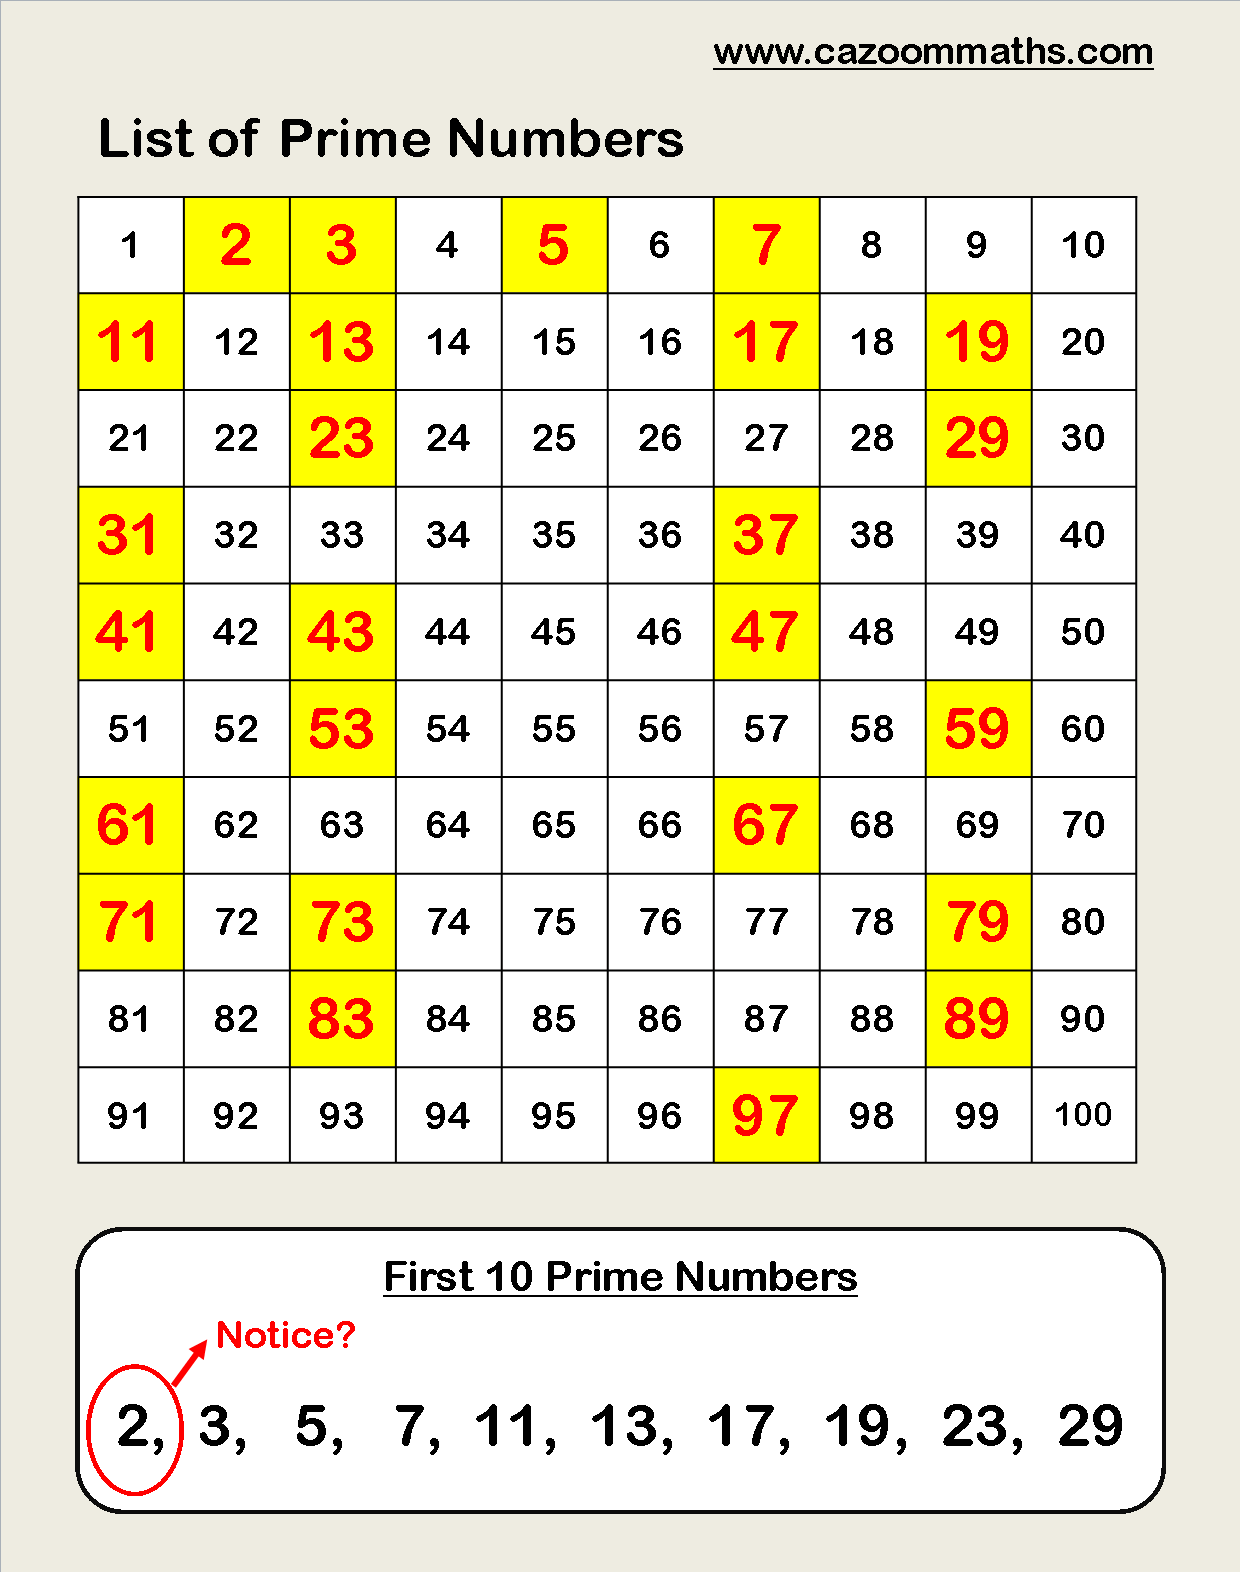 Cazoom Maths Worksheets - number resources, Math worksheets